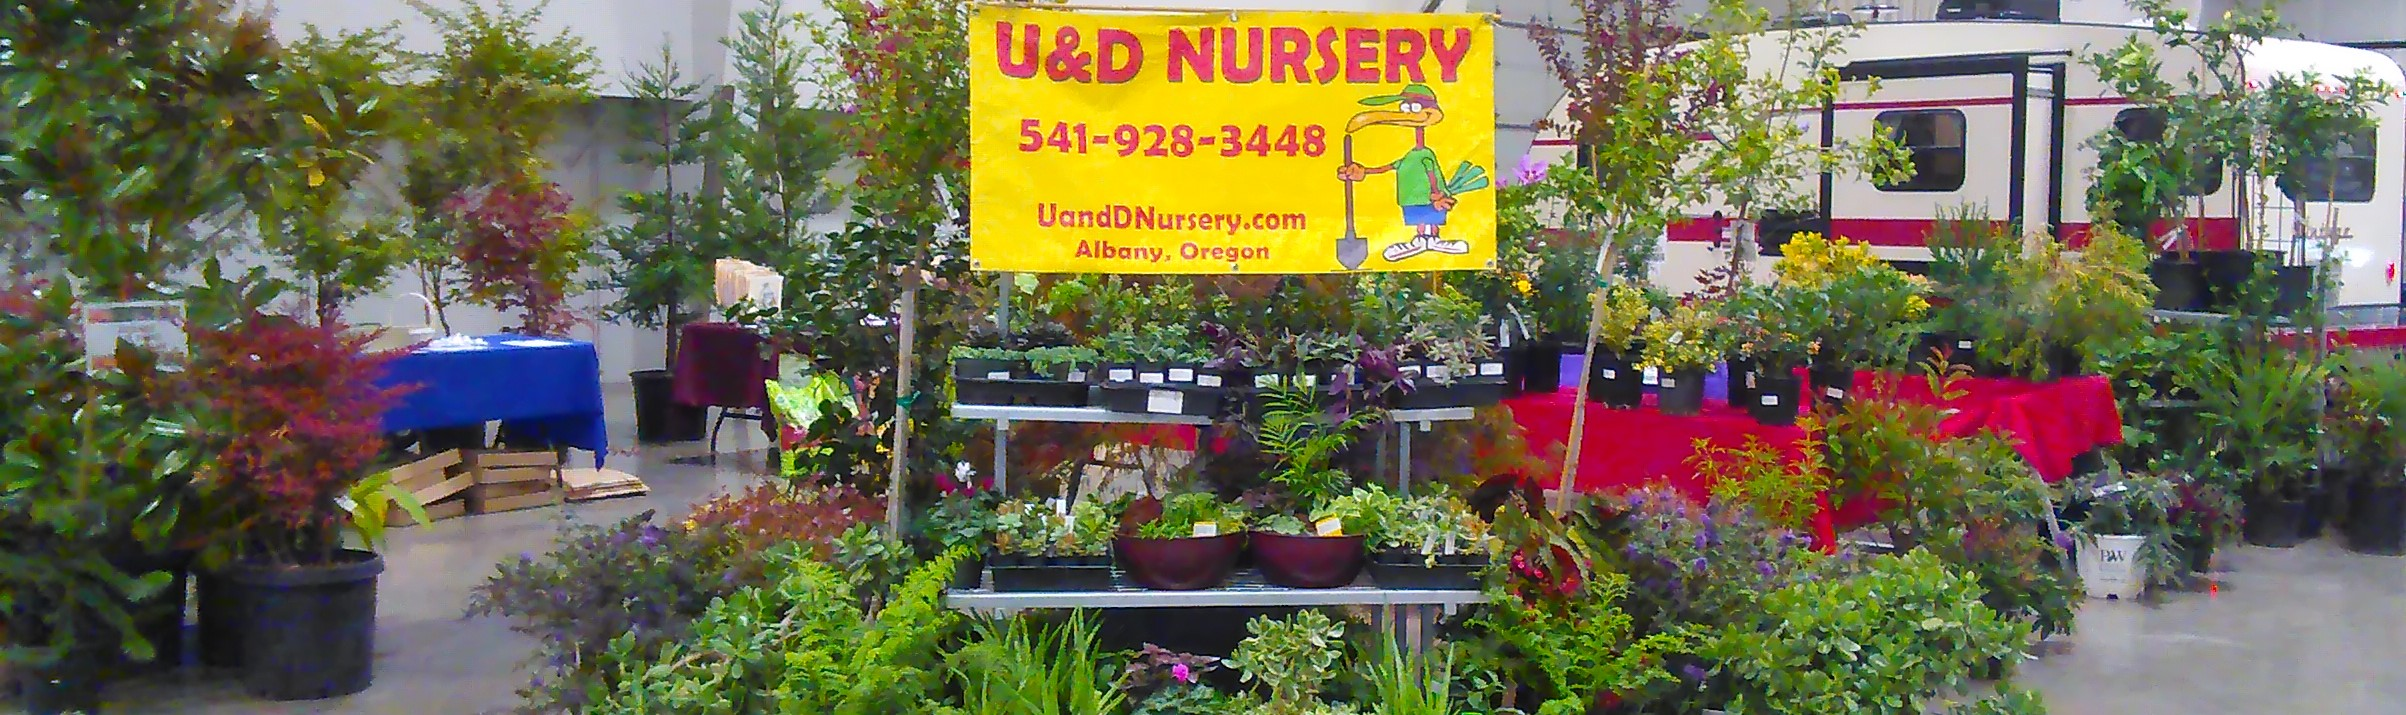 U & D Trucking & Nursery, Inc.